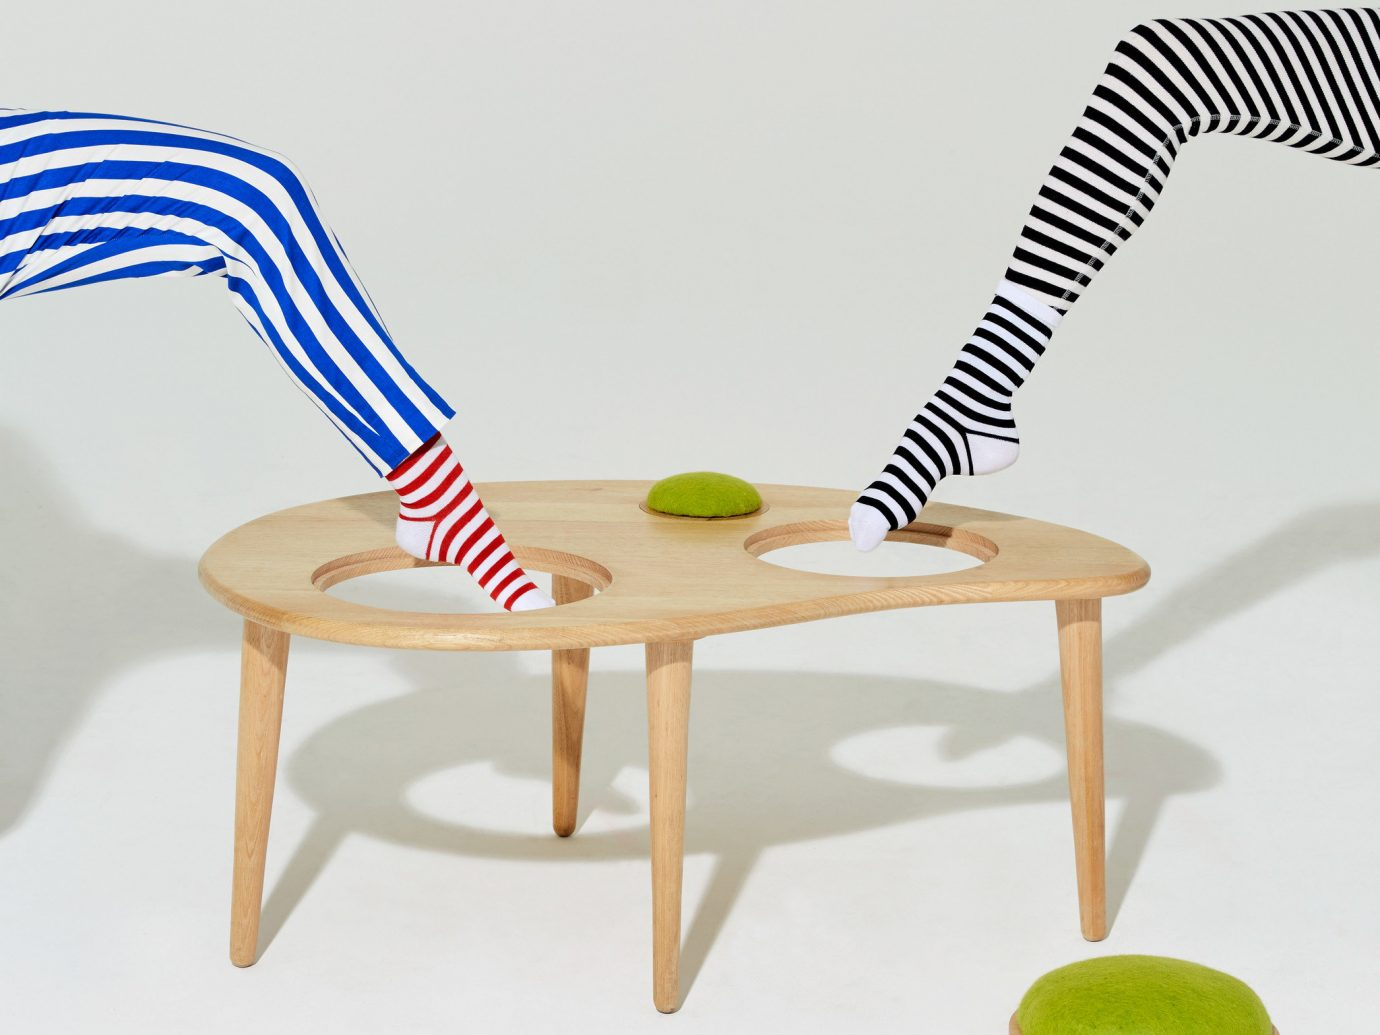 Trip Ideas furniture table chair product design seat wood product